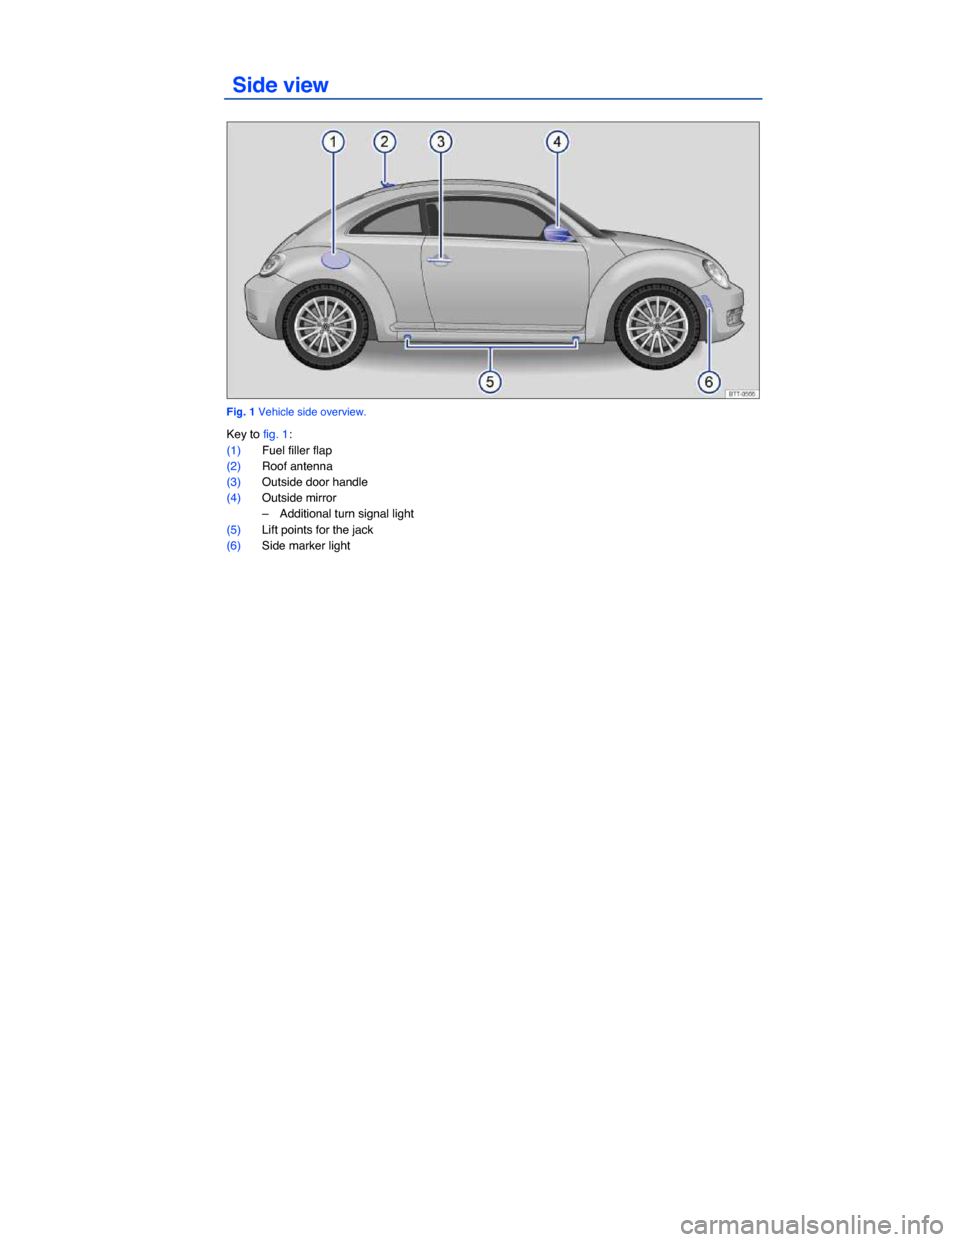 VOLKSWAGEN BEETLE 2015 3.G Owners Manual    Side view    Fig. 1 Vehicle side overview.  Key to fig. 1:  (1) Fuel filler flap   (2) Roof antenna